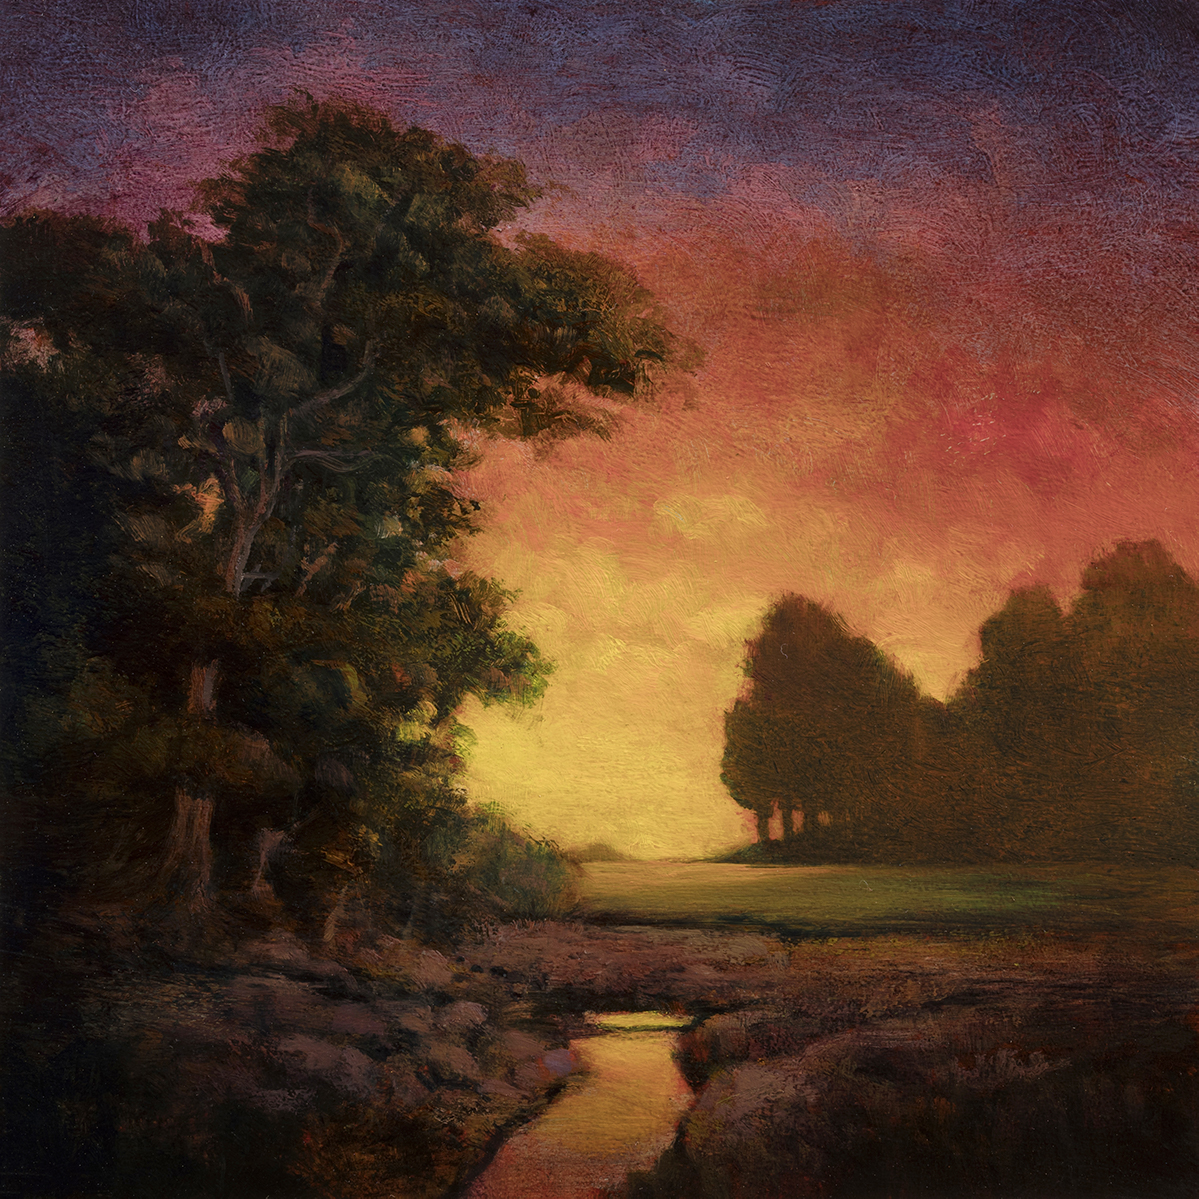 Morning Brook by M Francis McCarthy - 8x8 Oil on Wood Panel